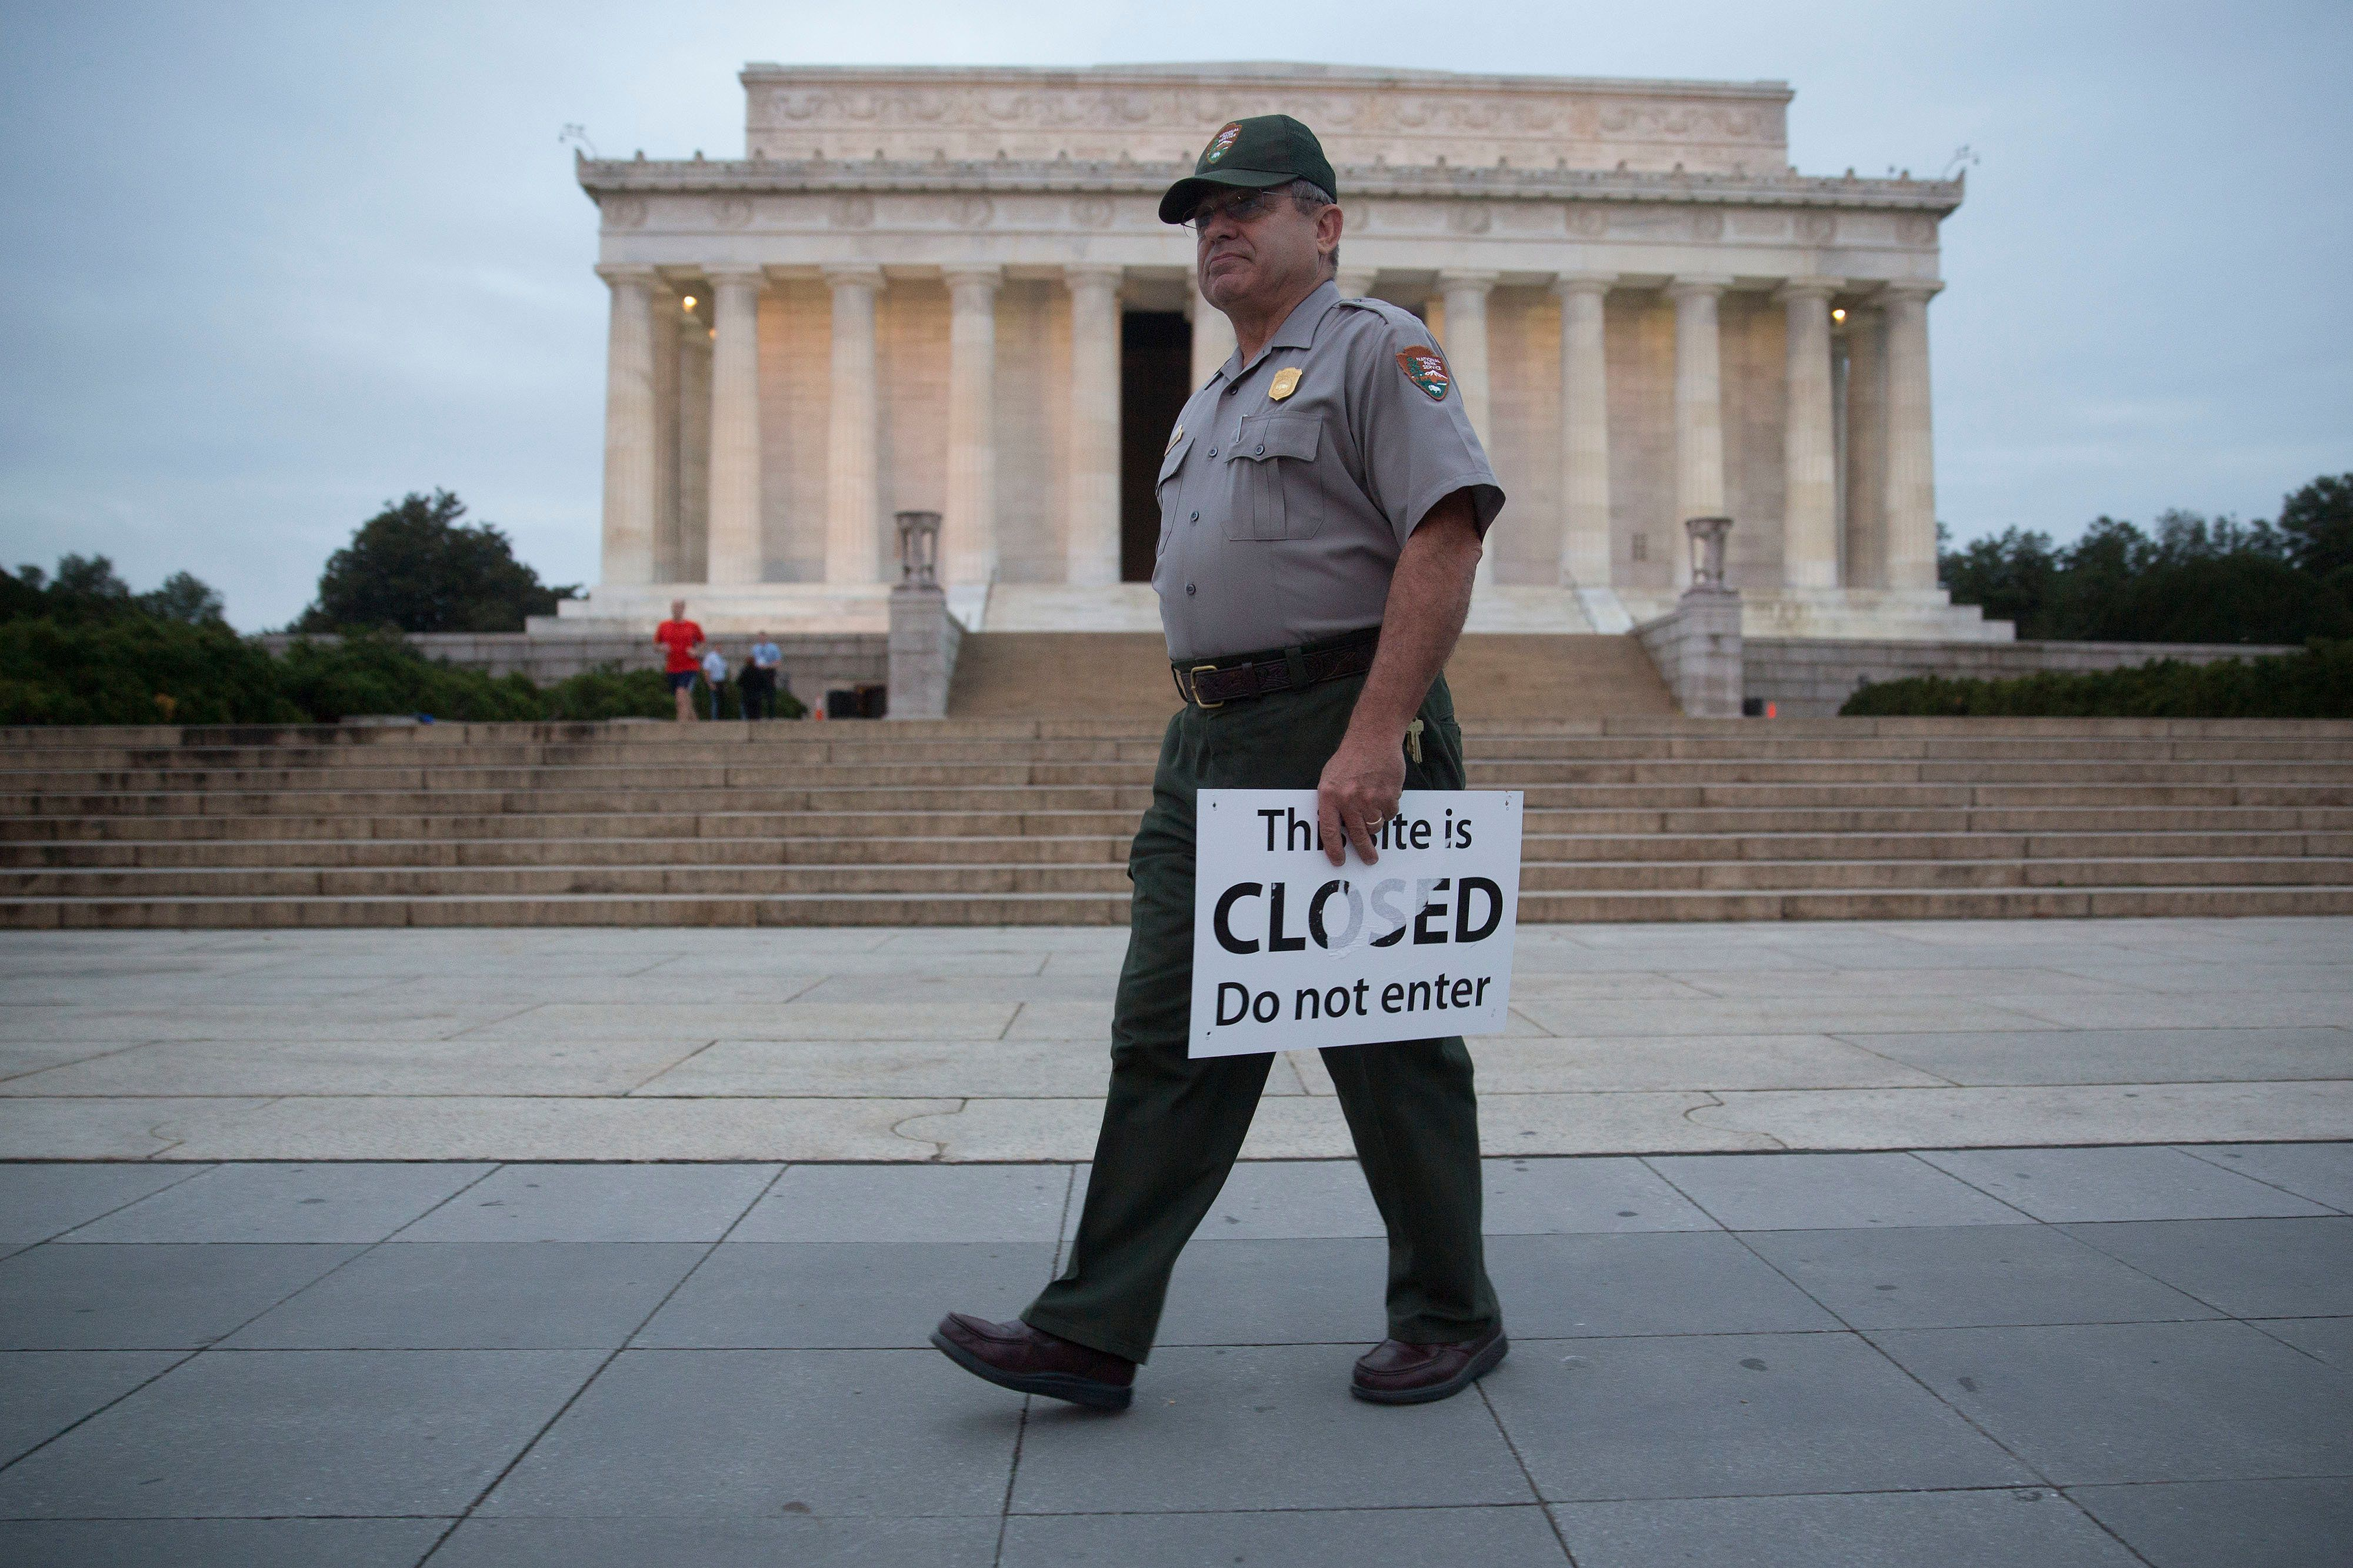 A National Park Service rangerremoves a closed sign from the Lincoln Memorial after the 2013 shutdown.